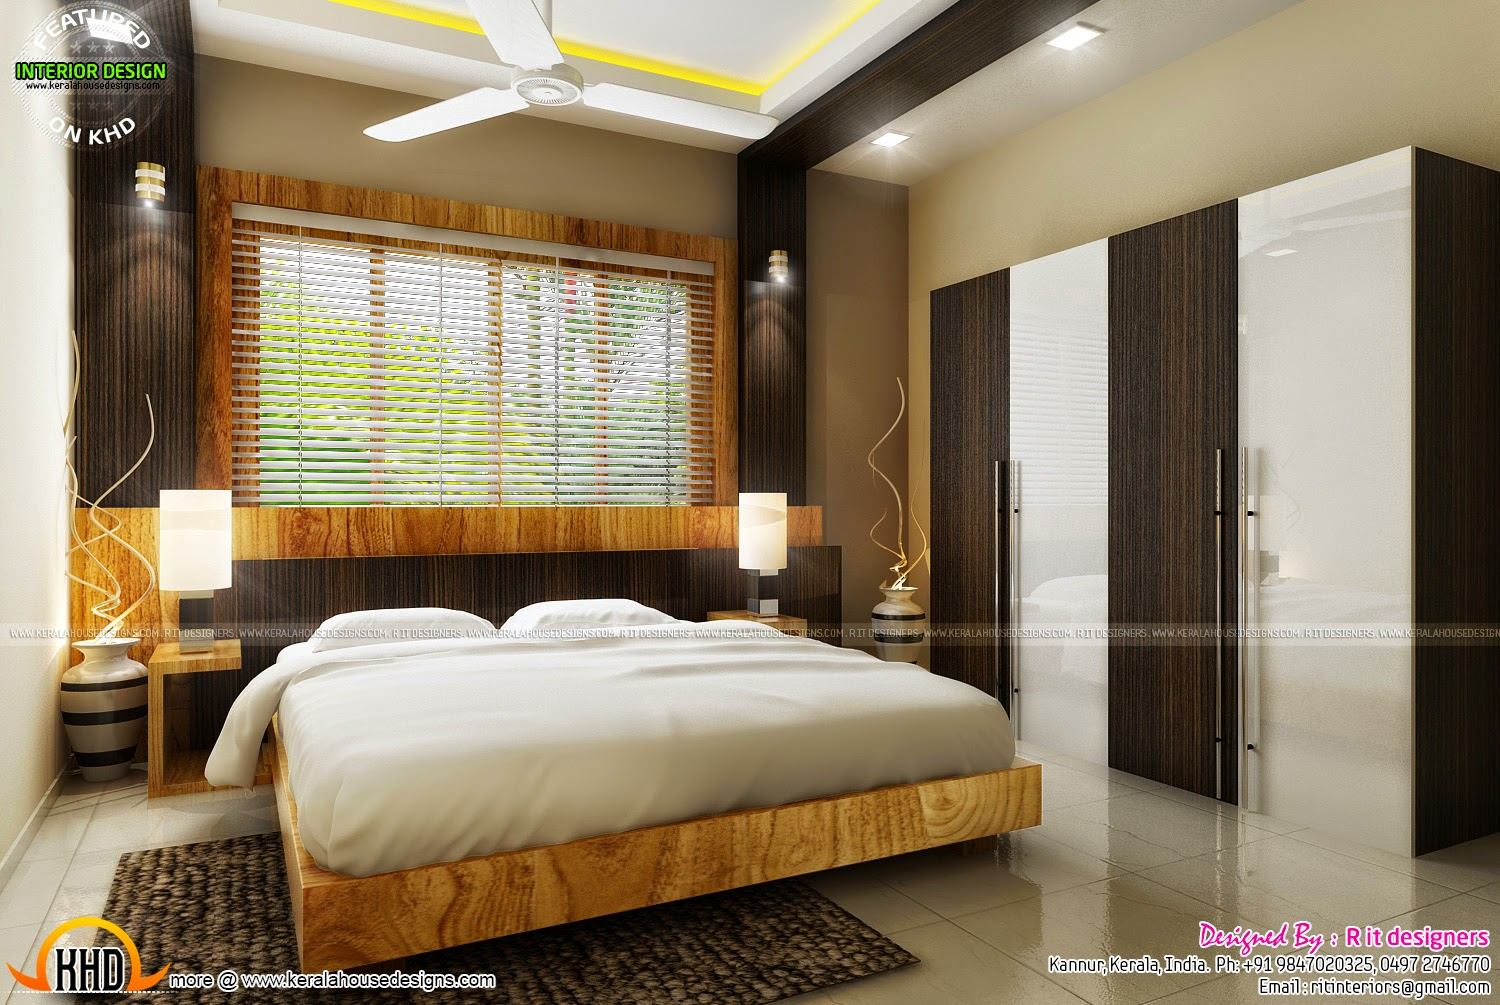 Bedroom interior design with cost kerala home design and floor plans - Interior designs ...